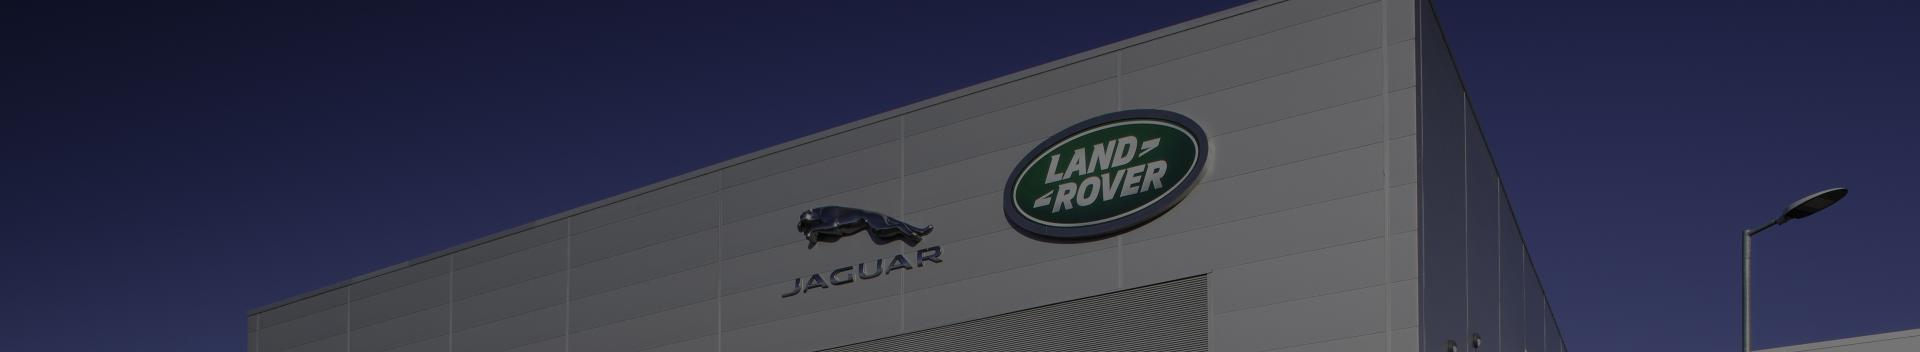 jaguar land rover cladding tata steel platinum plus system guarantee